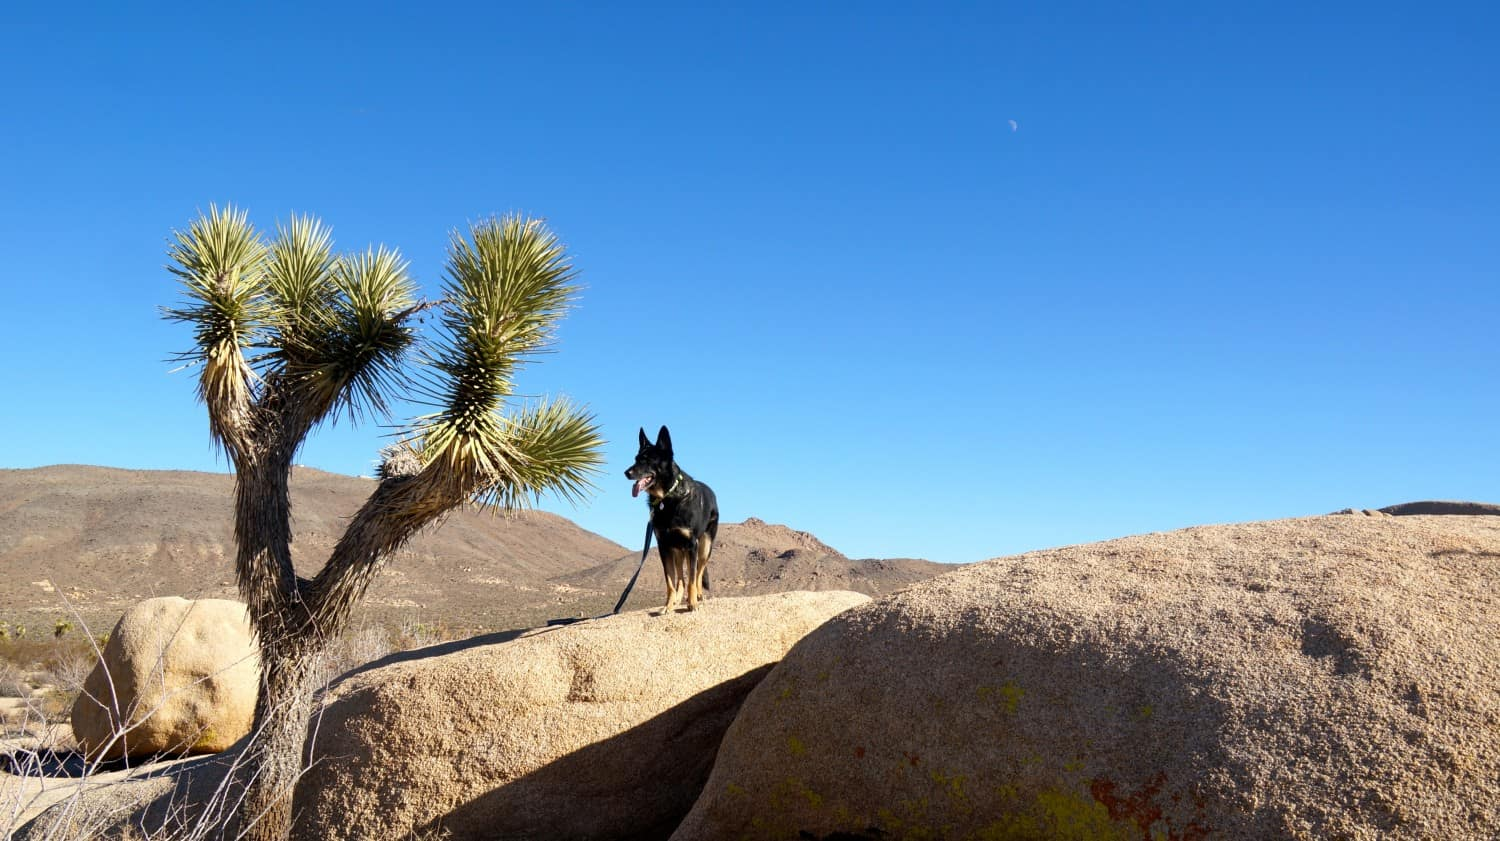 Buster the dog at pet friendly Joshua Tree National Park - Palm Springs, CA